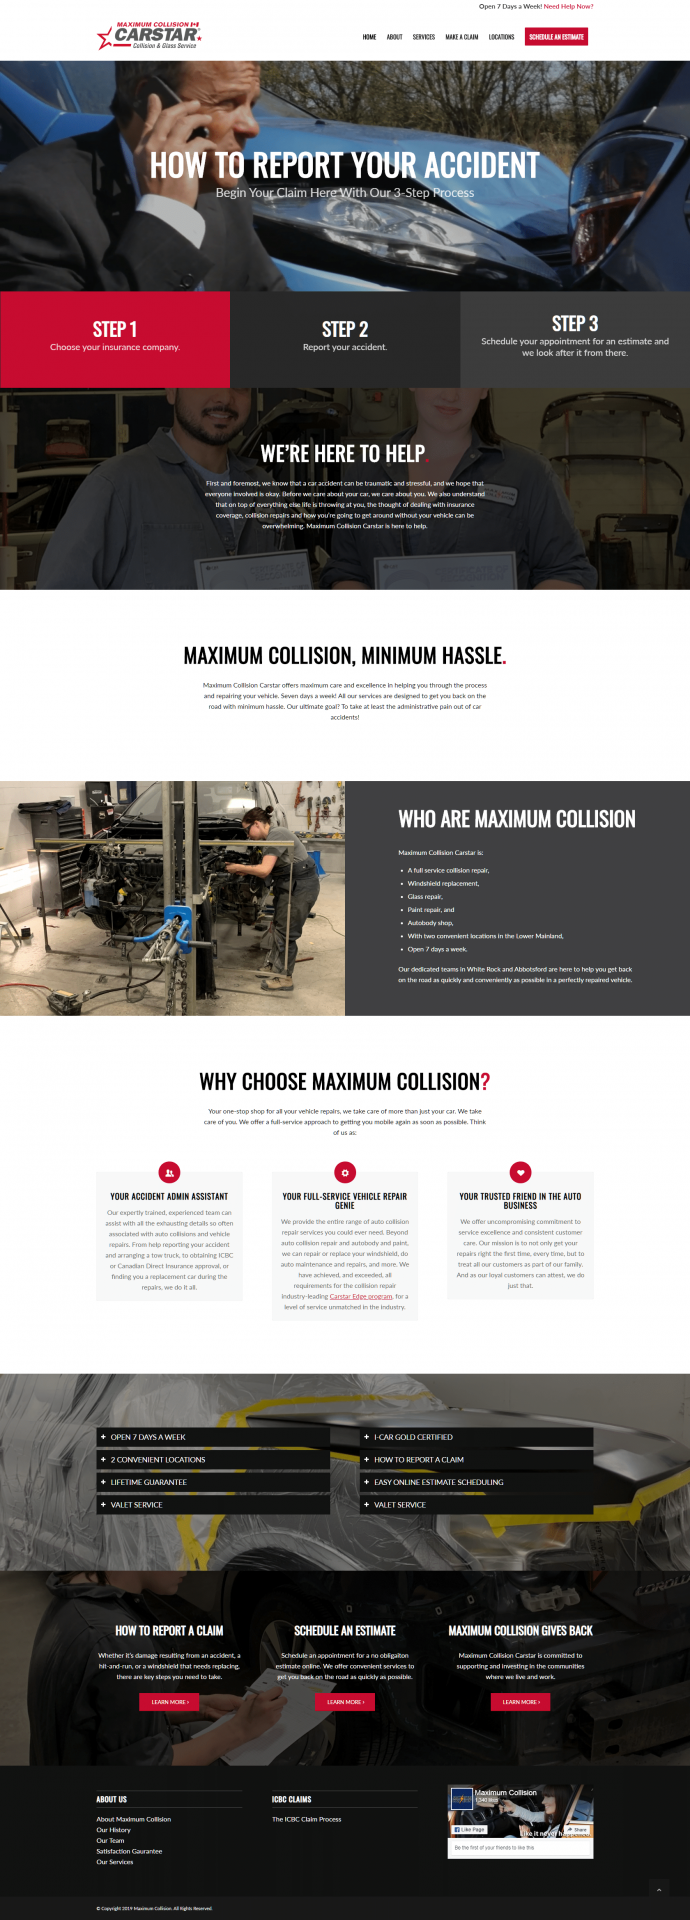 Maximum Collision website design homepage layout example